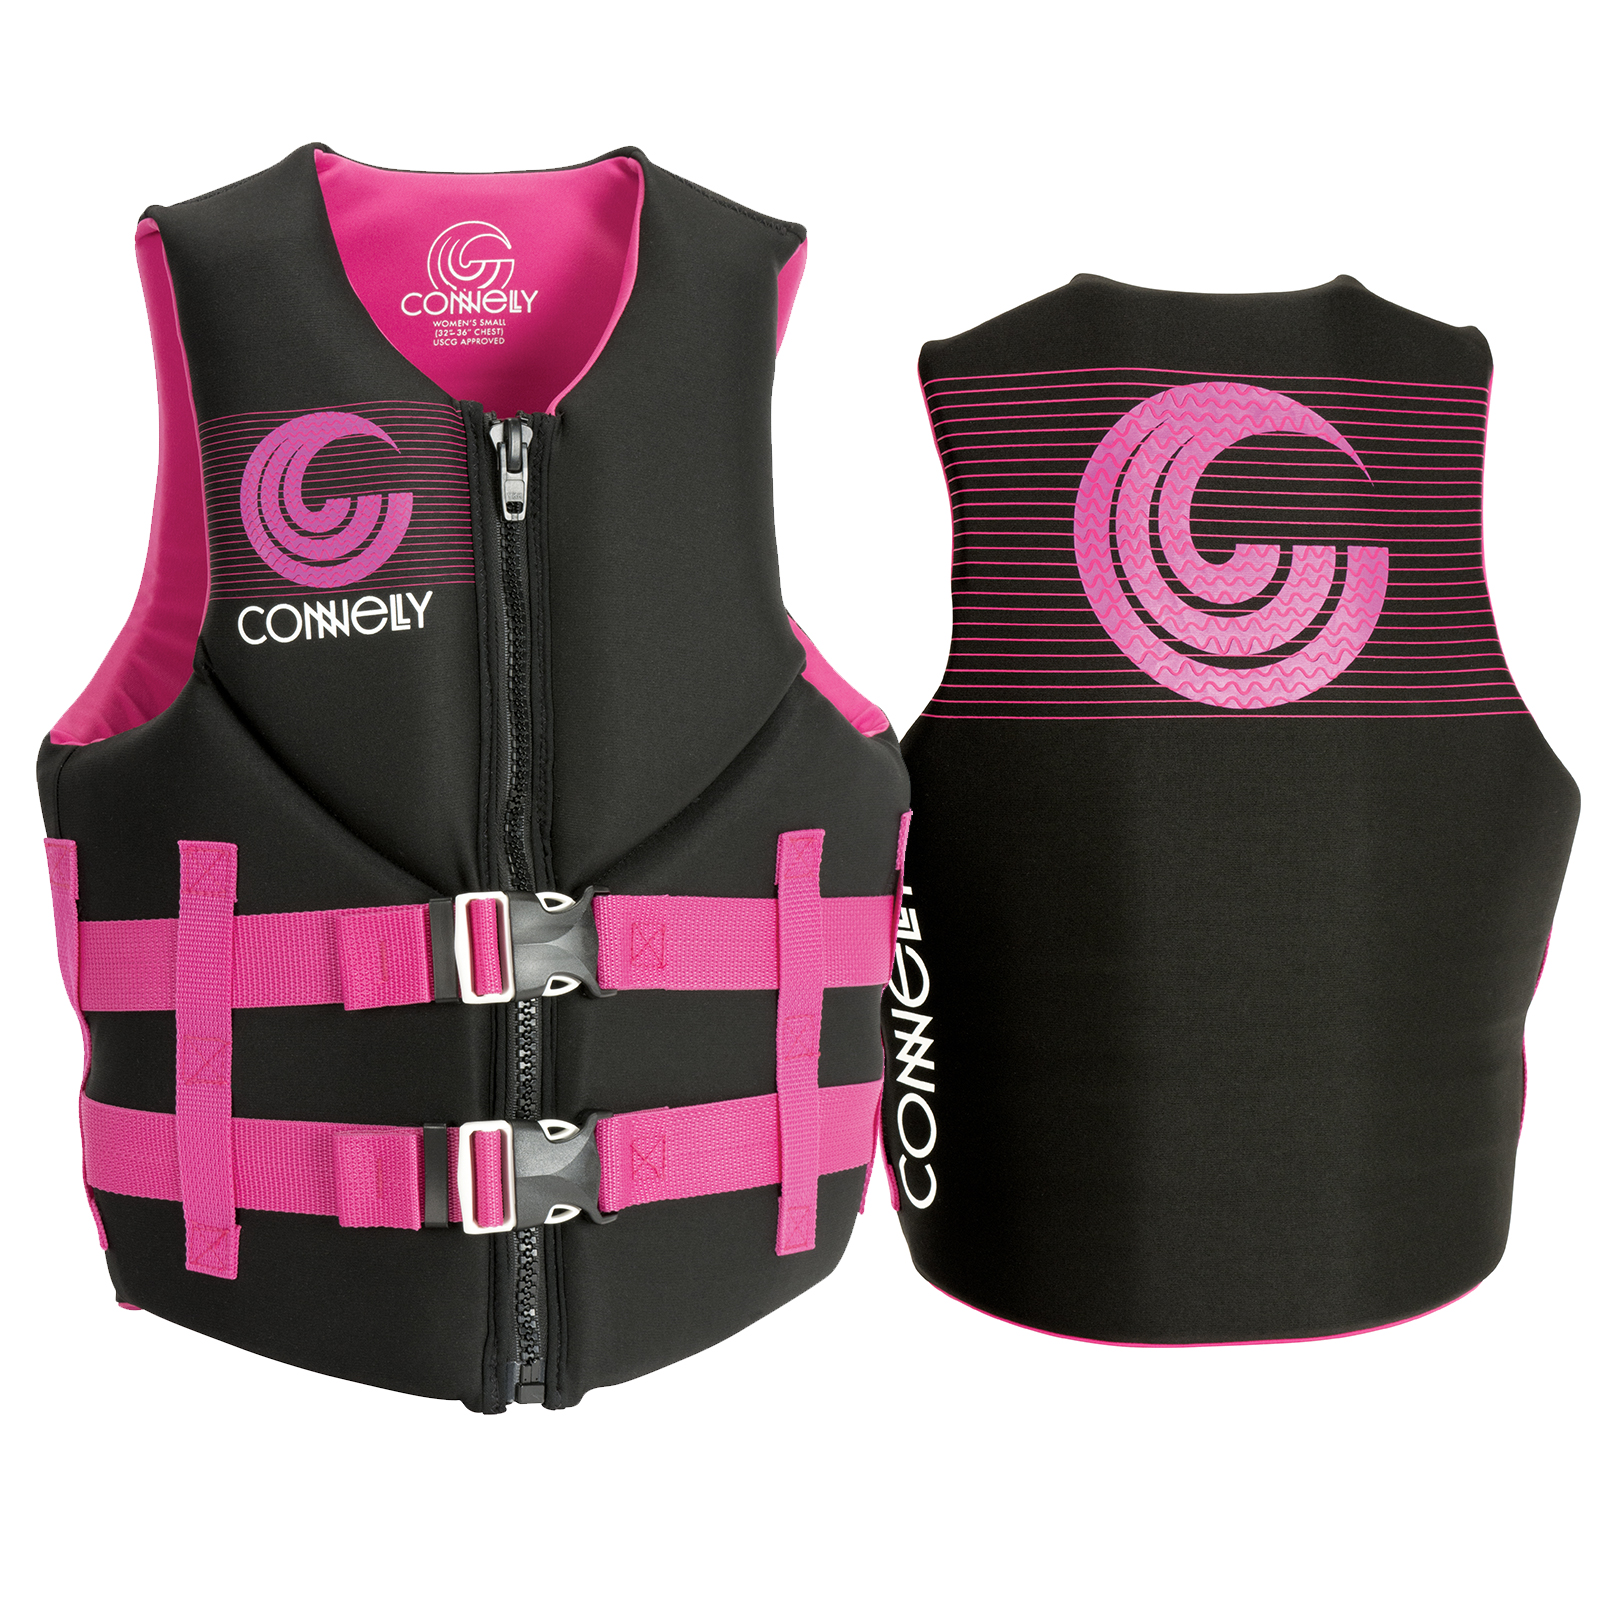 PROMO WOMEN'S NEO LIFE VEST - PINK CONNELLY 2019